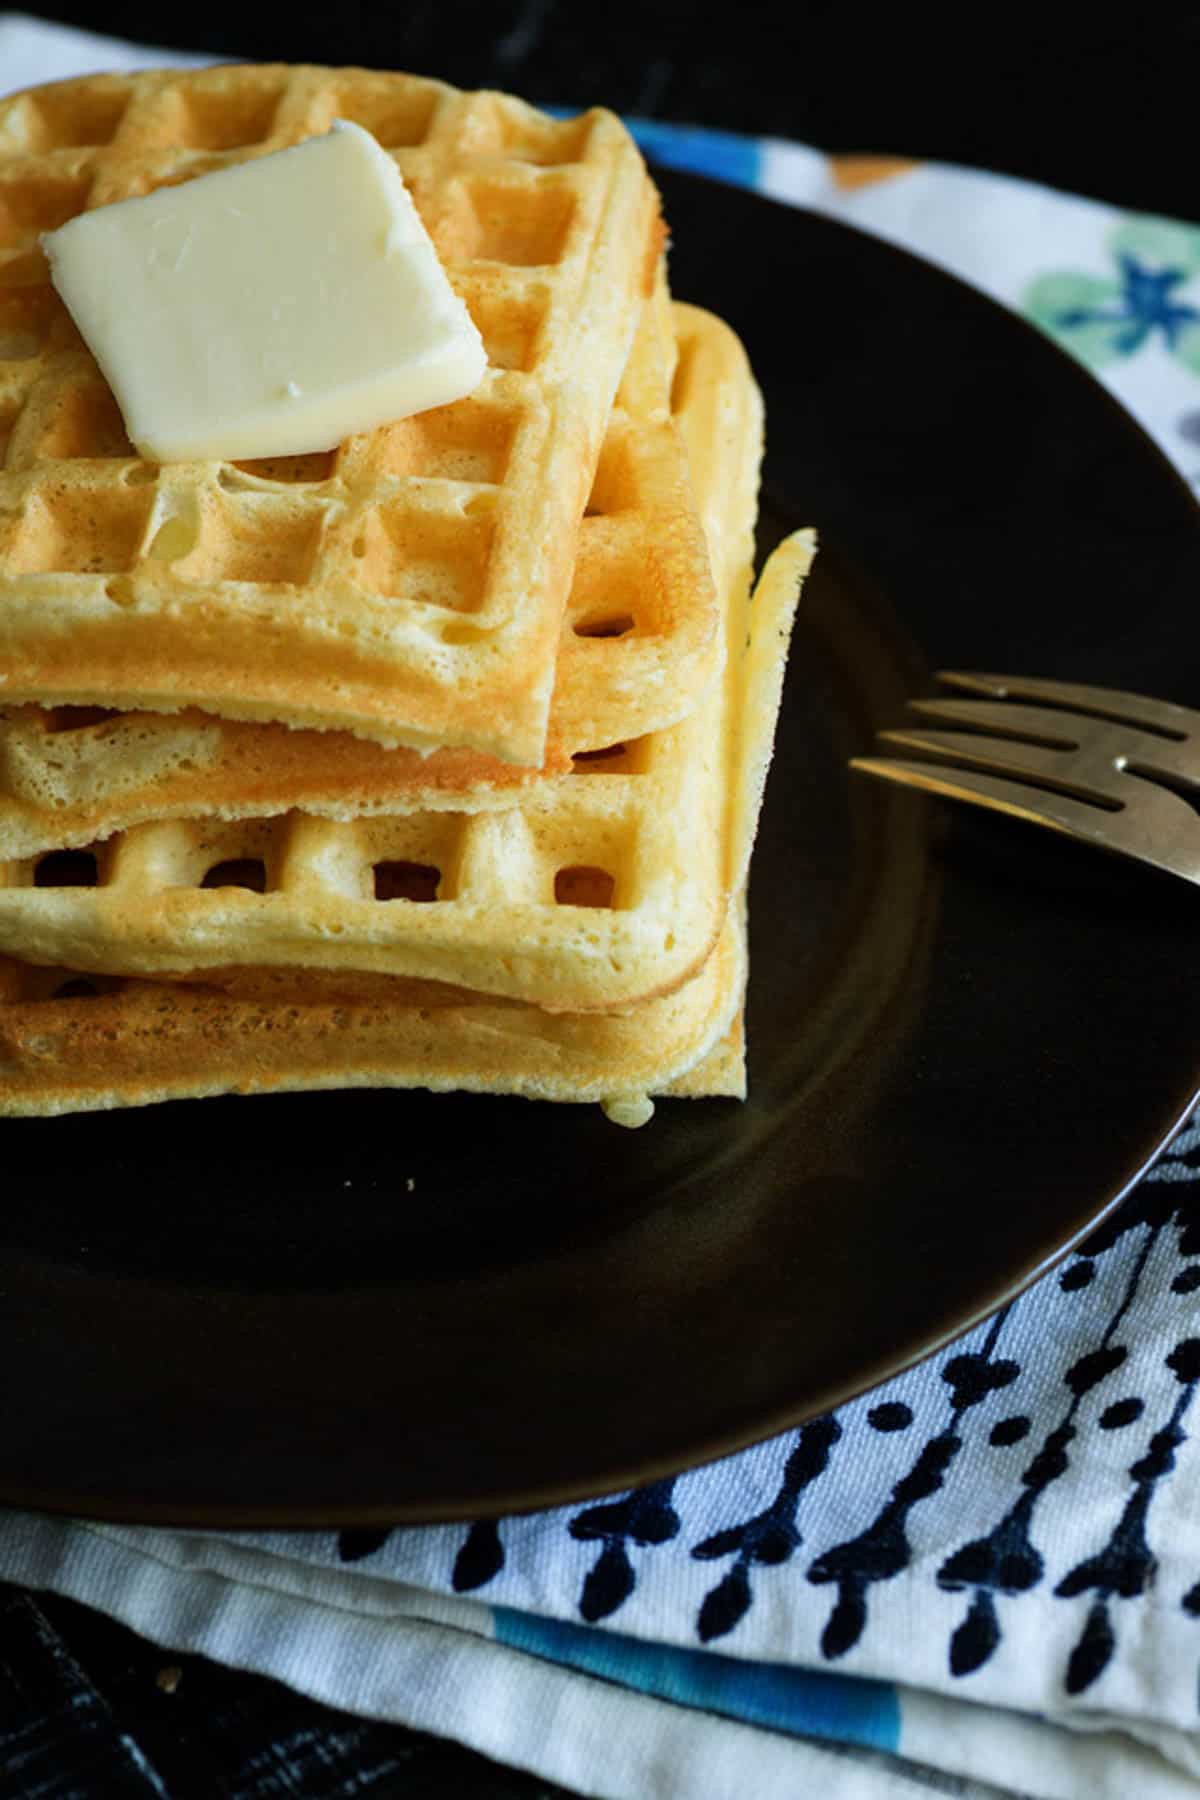 A stack of waffles with butter on top.